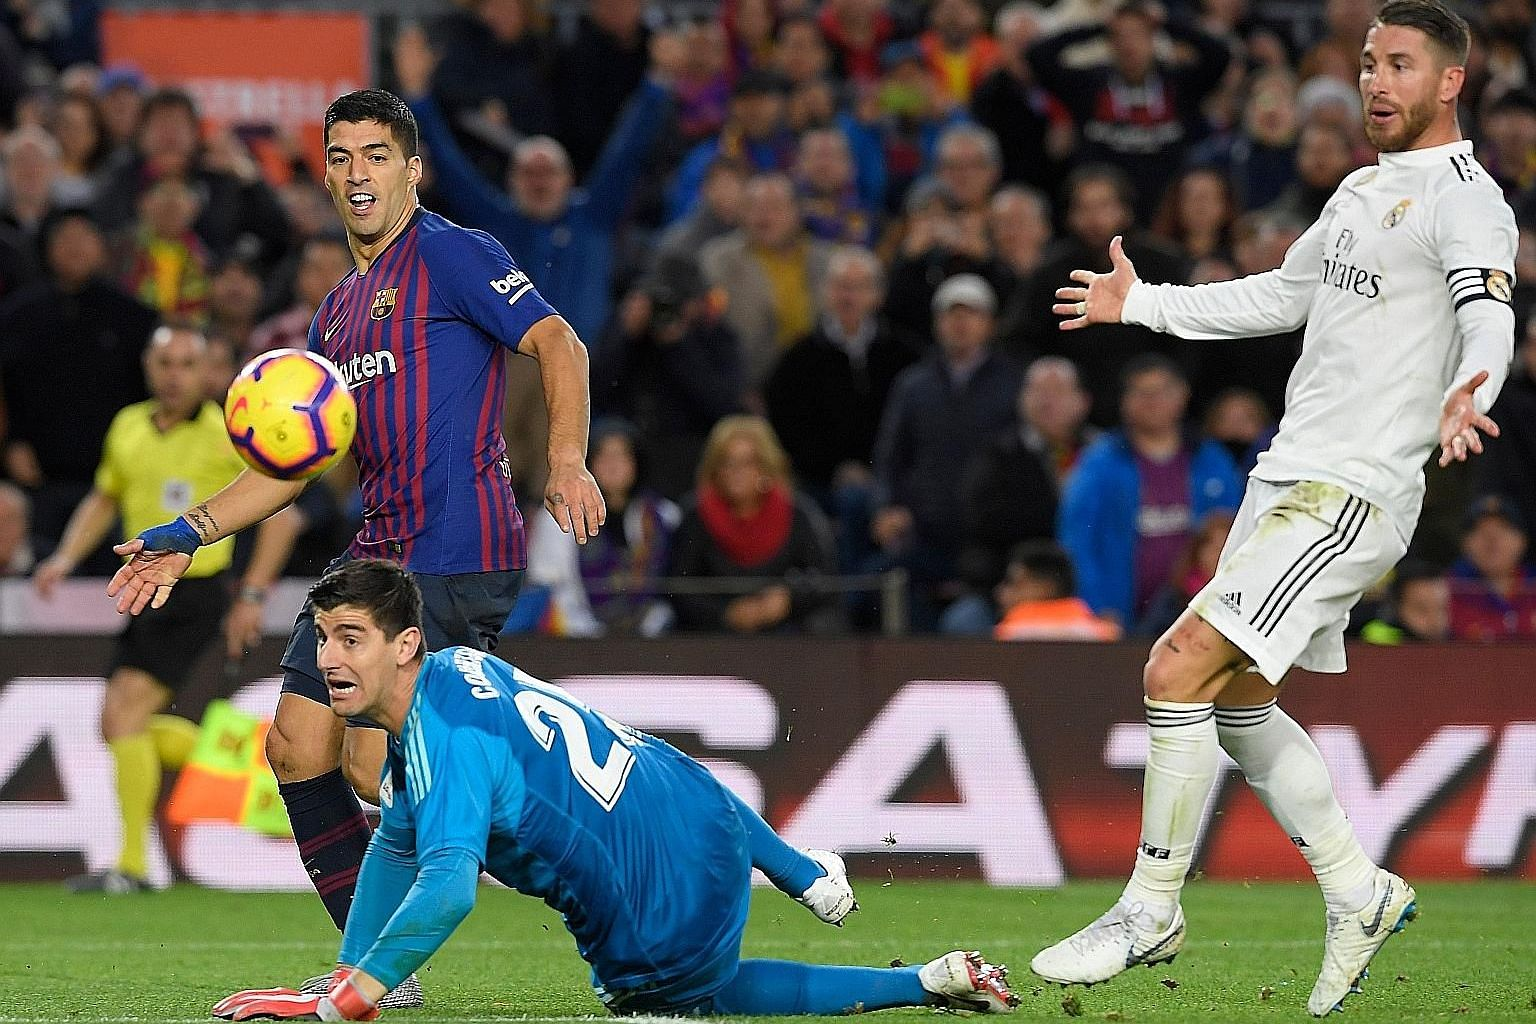 Barcelona striker Luis Suarez dinks the ball over Real Madrid custodian Thibaut Courtois to score his team's fourth goal in the 5-1 thrashing at the Nou Camp on Sunday.